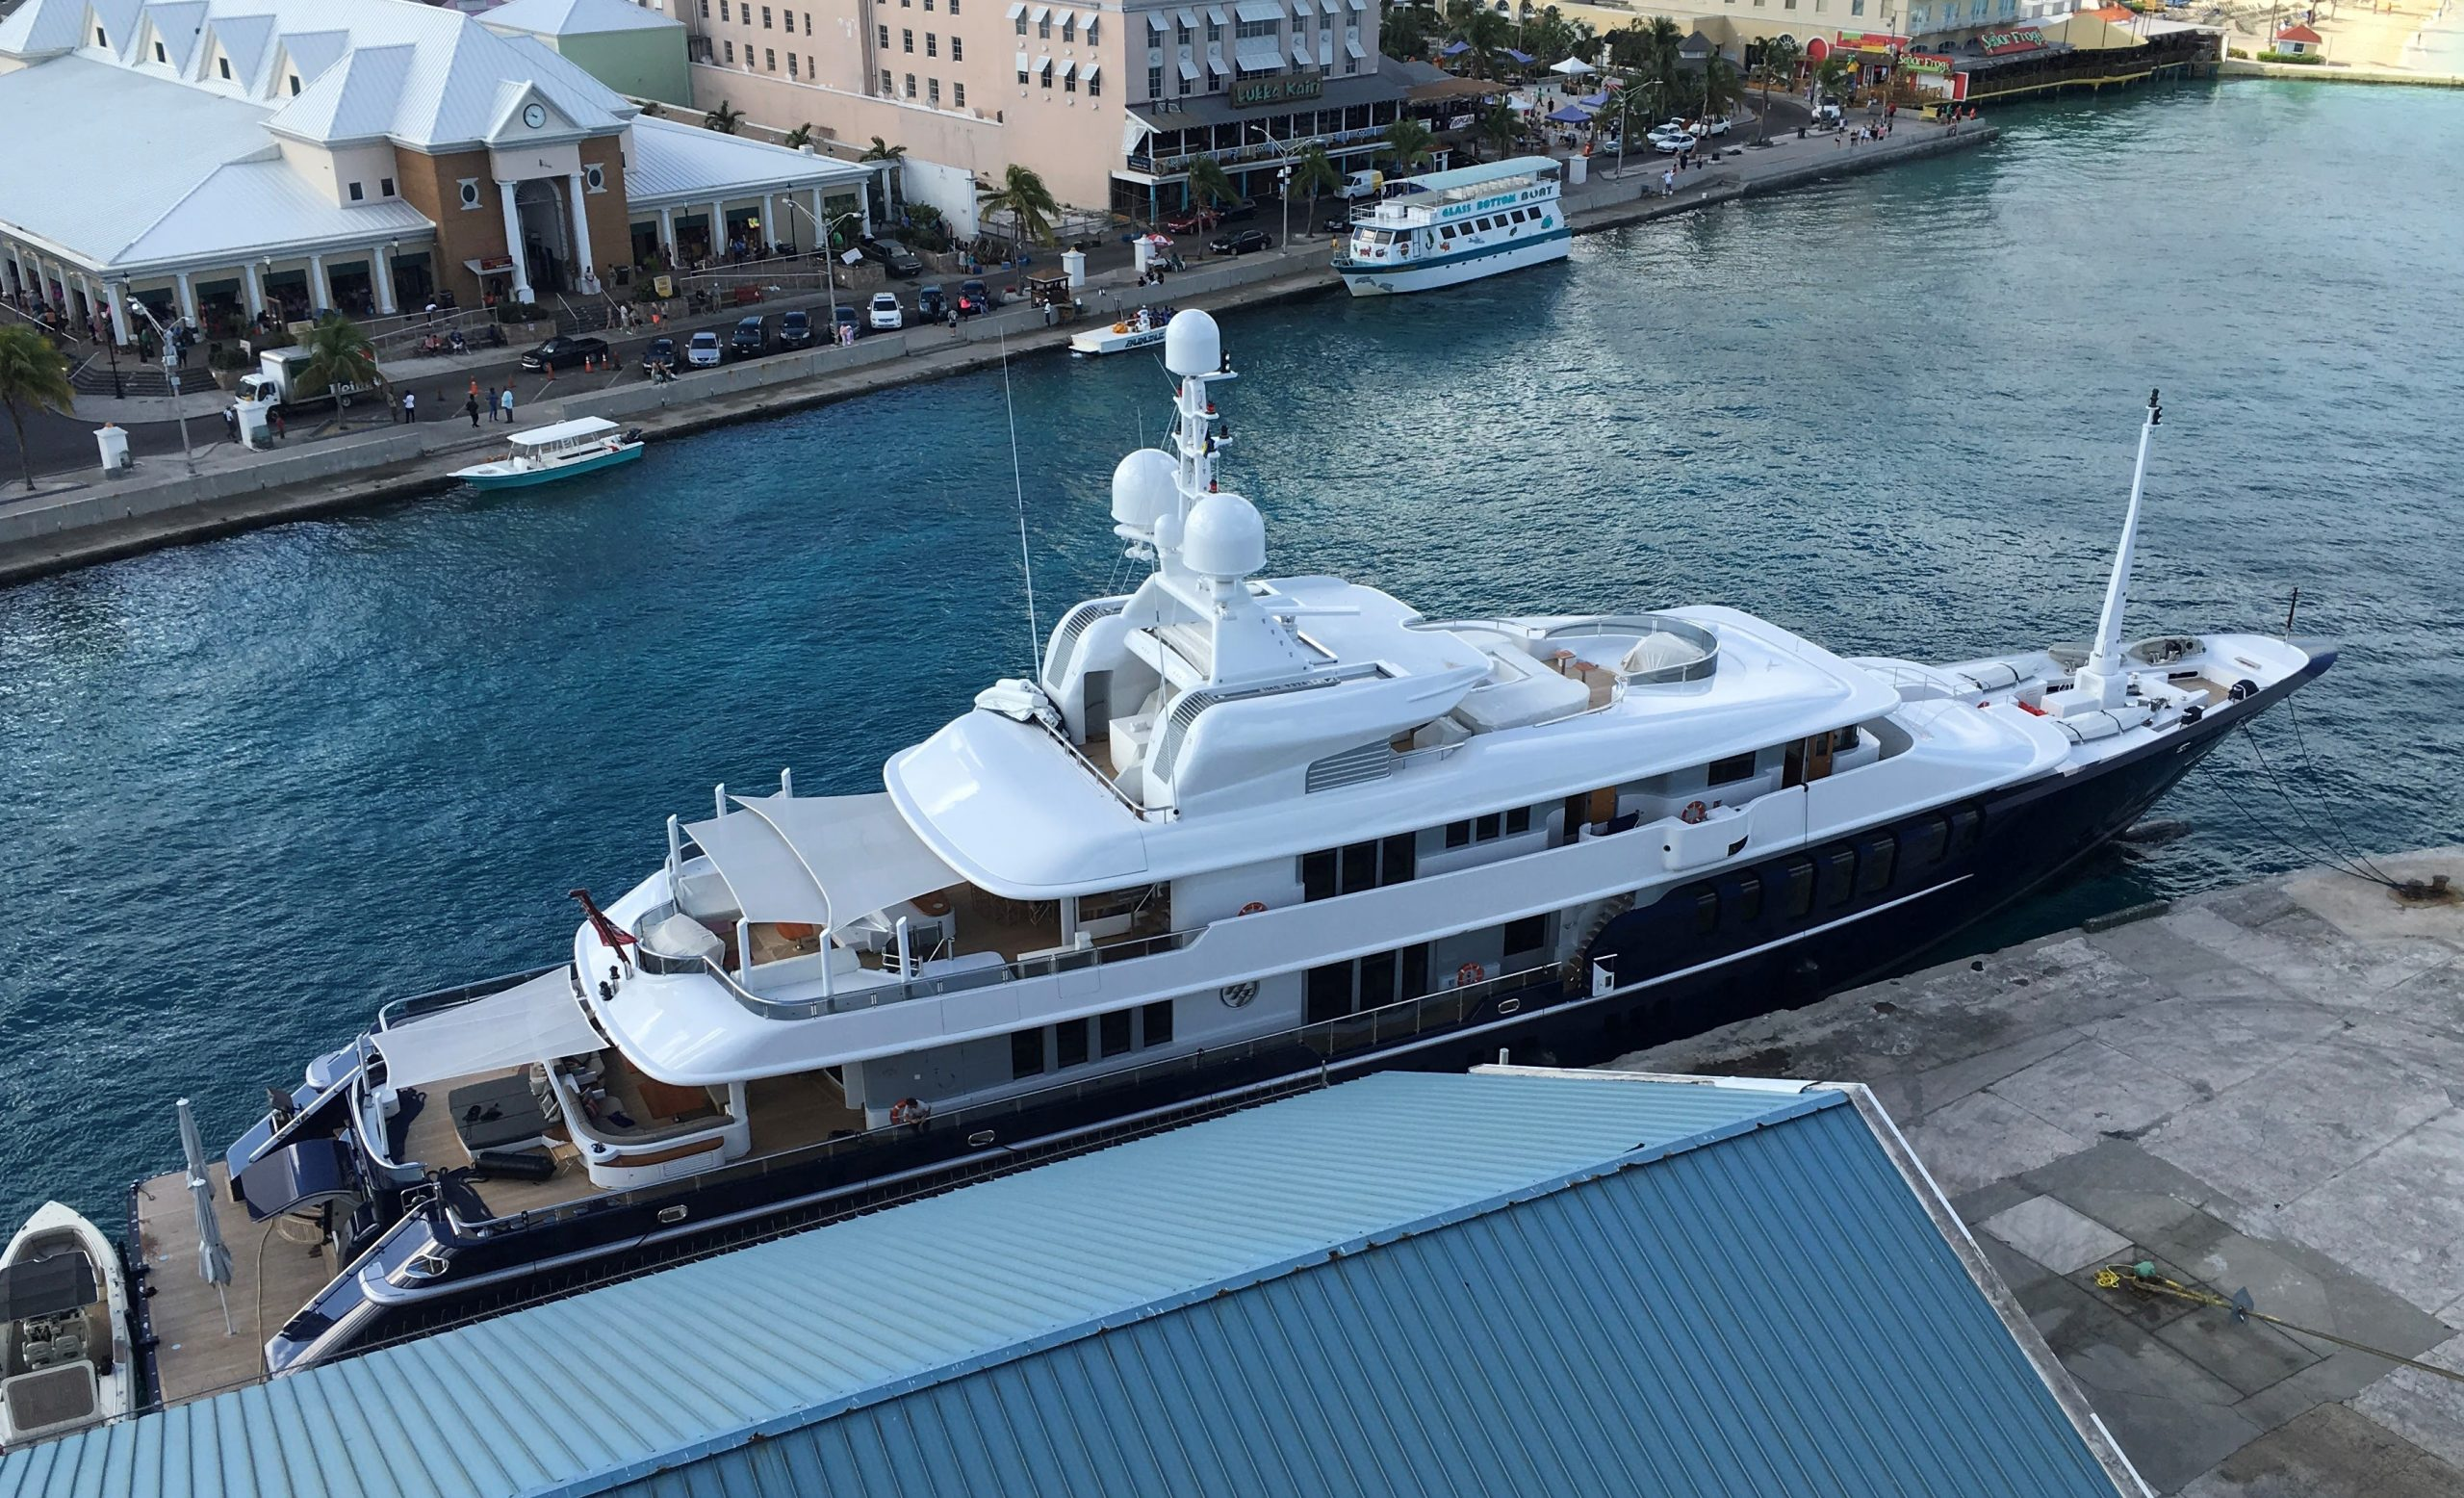 Image of a private yacht provided by Jeff Skinner of AmperageApps